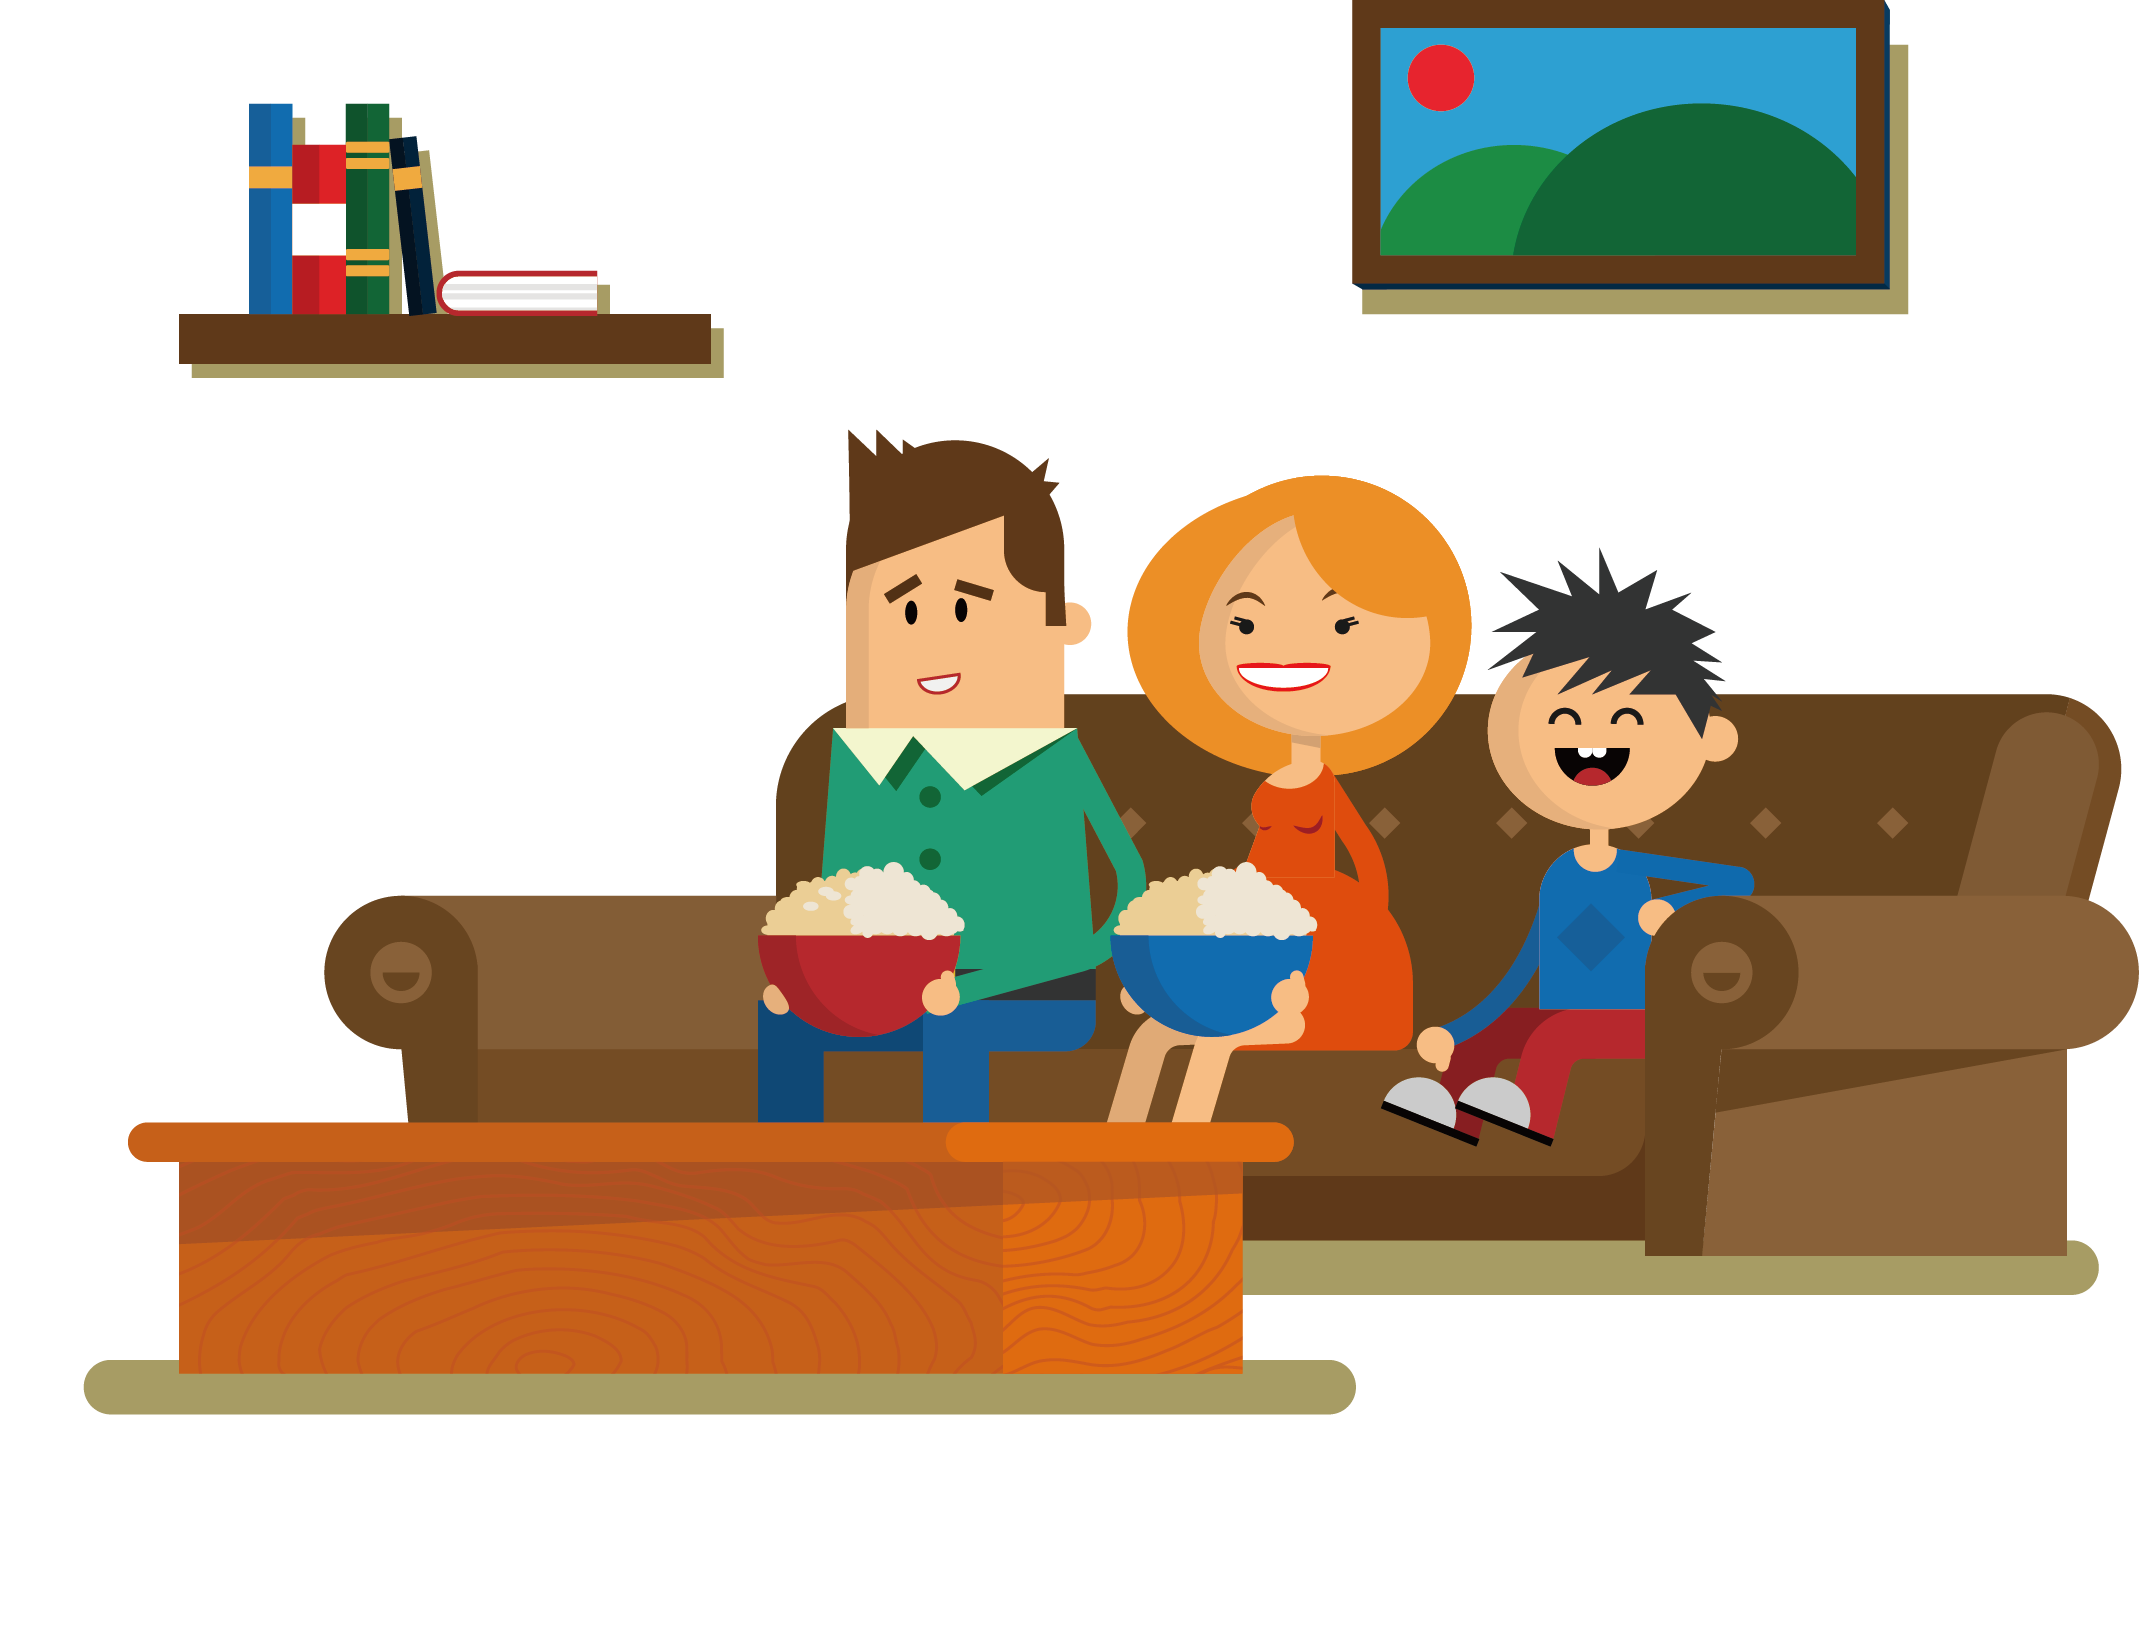 Clipart tv living room. Couch sitting drawing cartoon